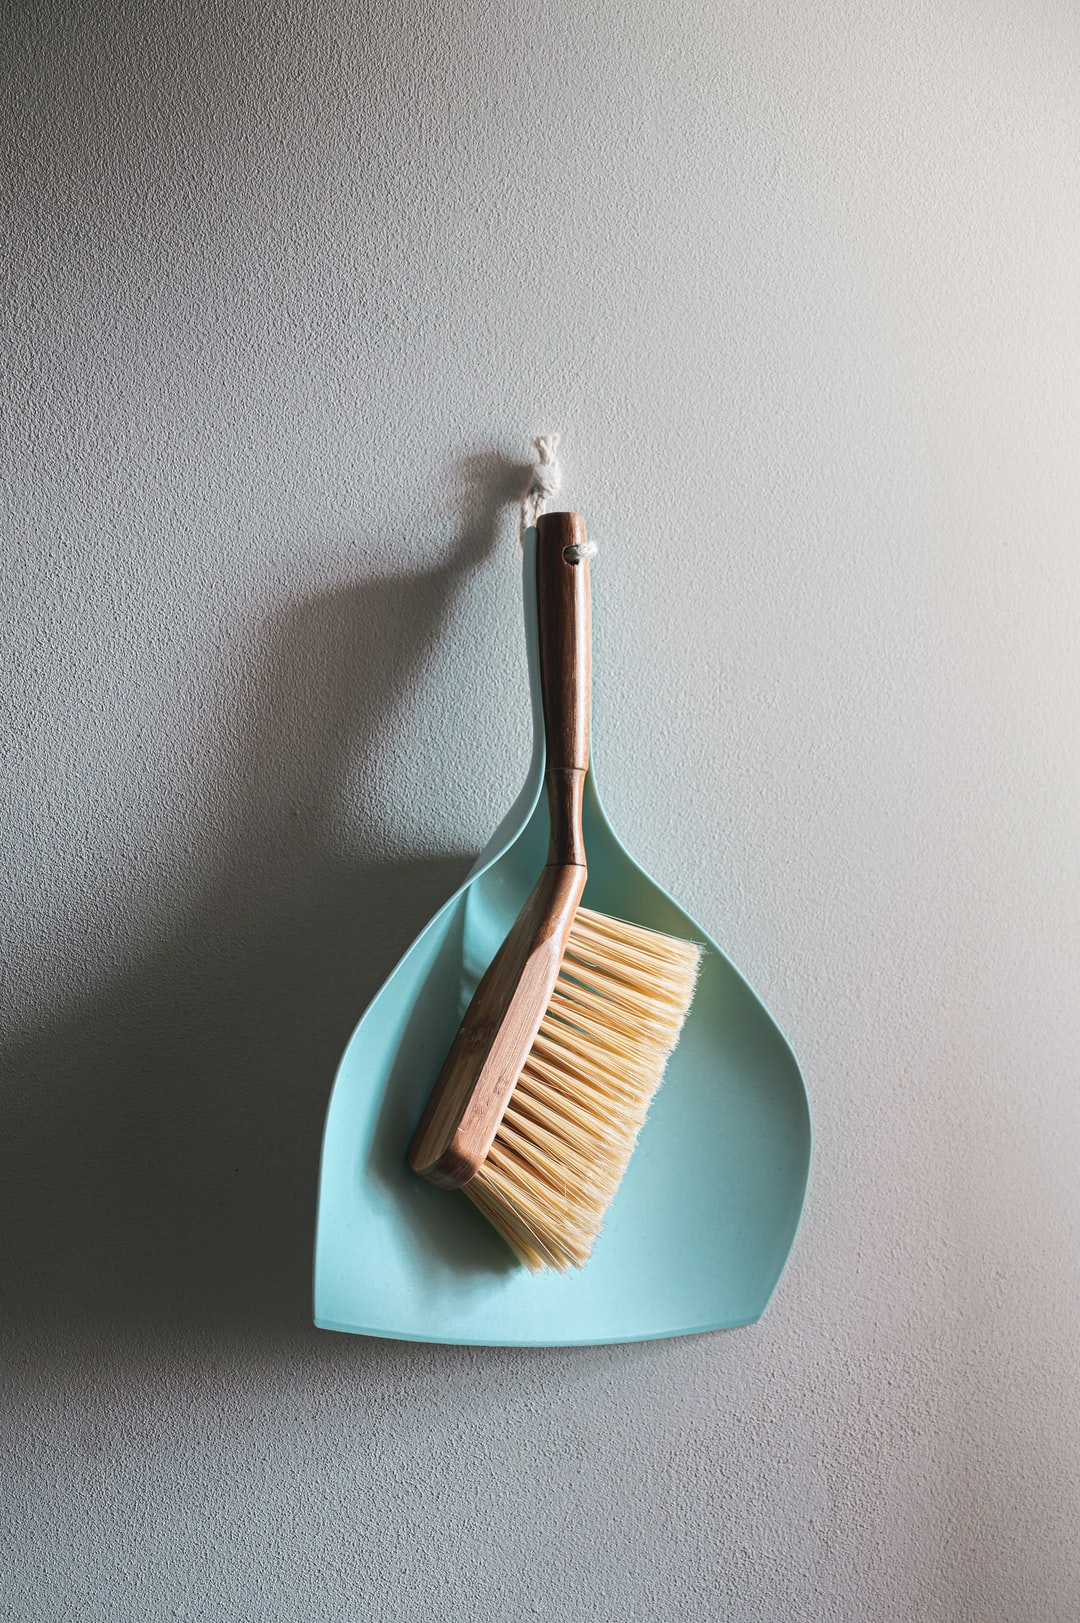 design Broom and paddle for clean home